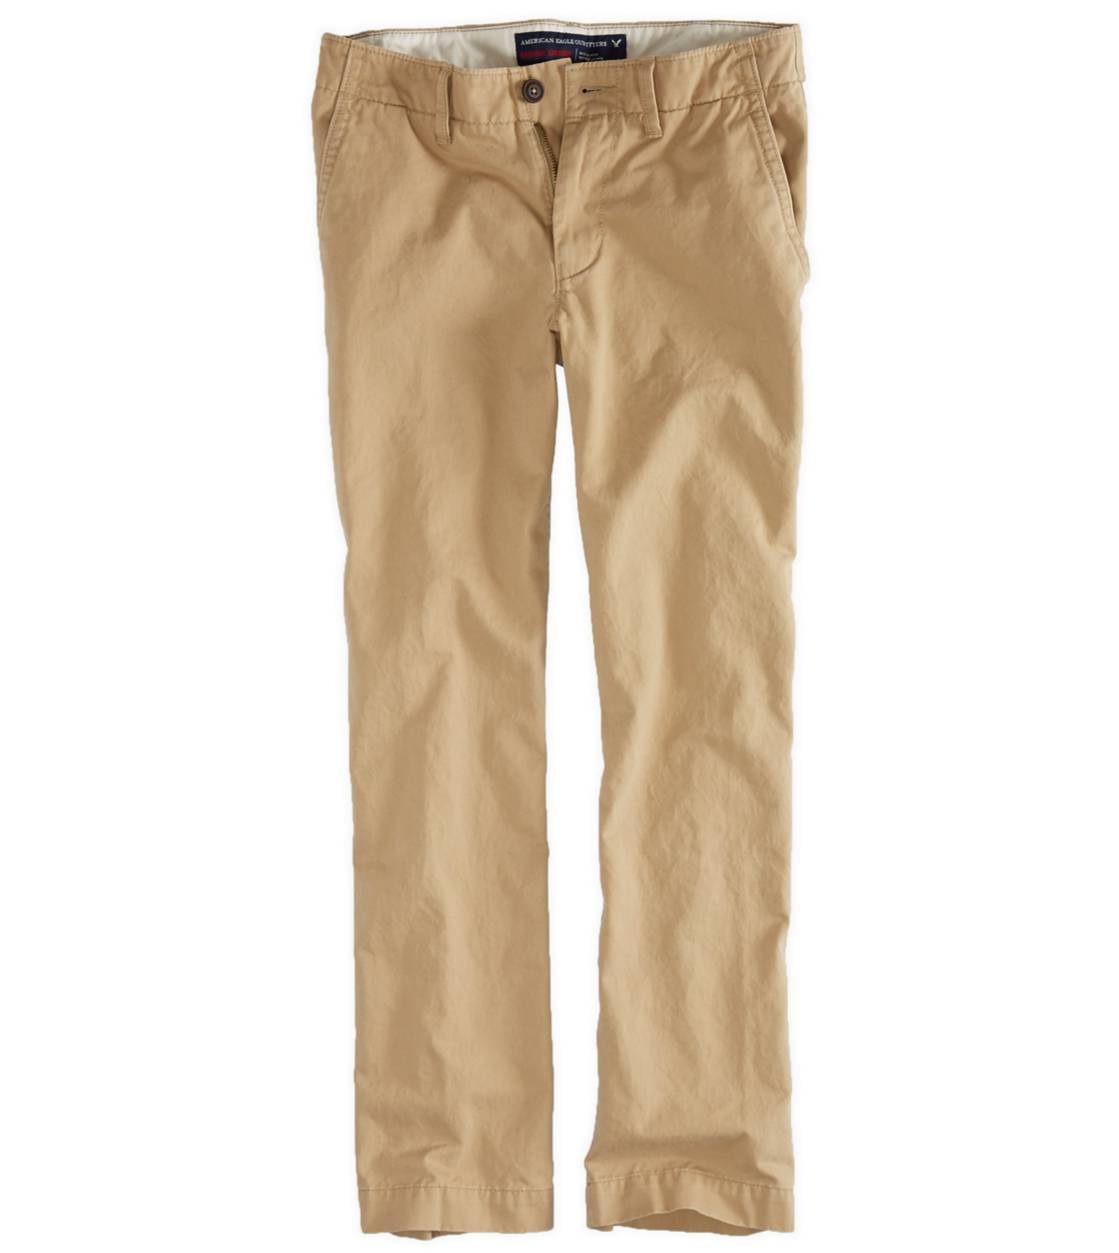 Field Khaki AEO Factory Original Straight Khaki